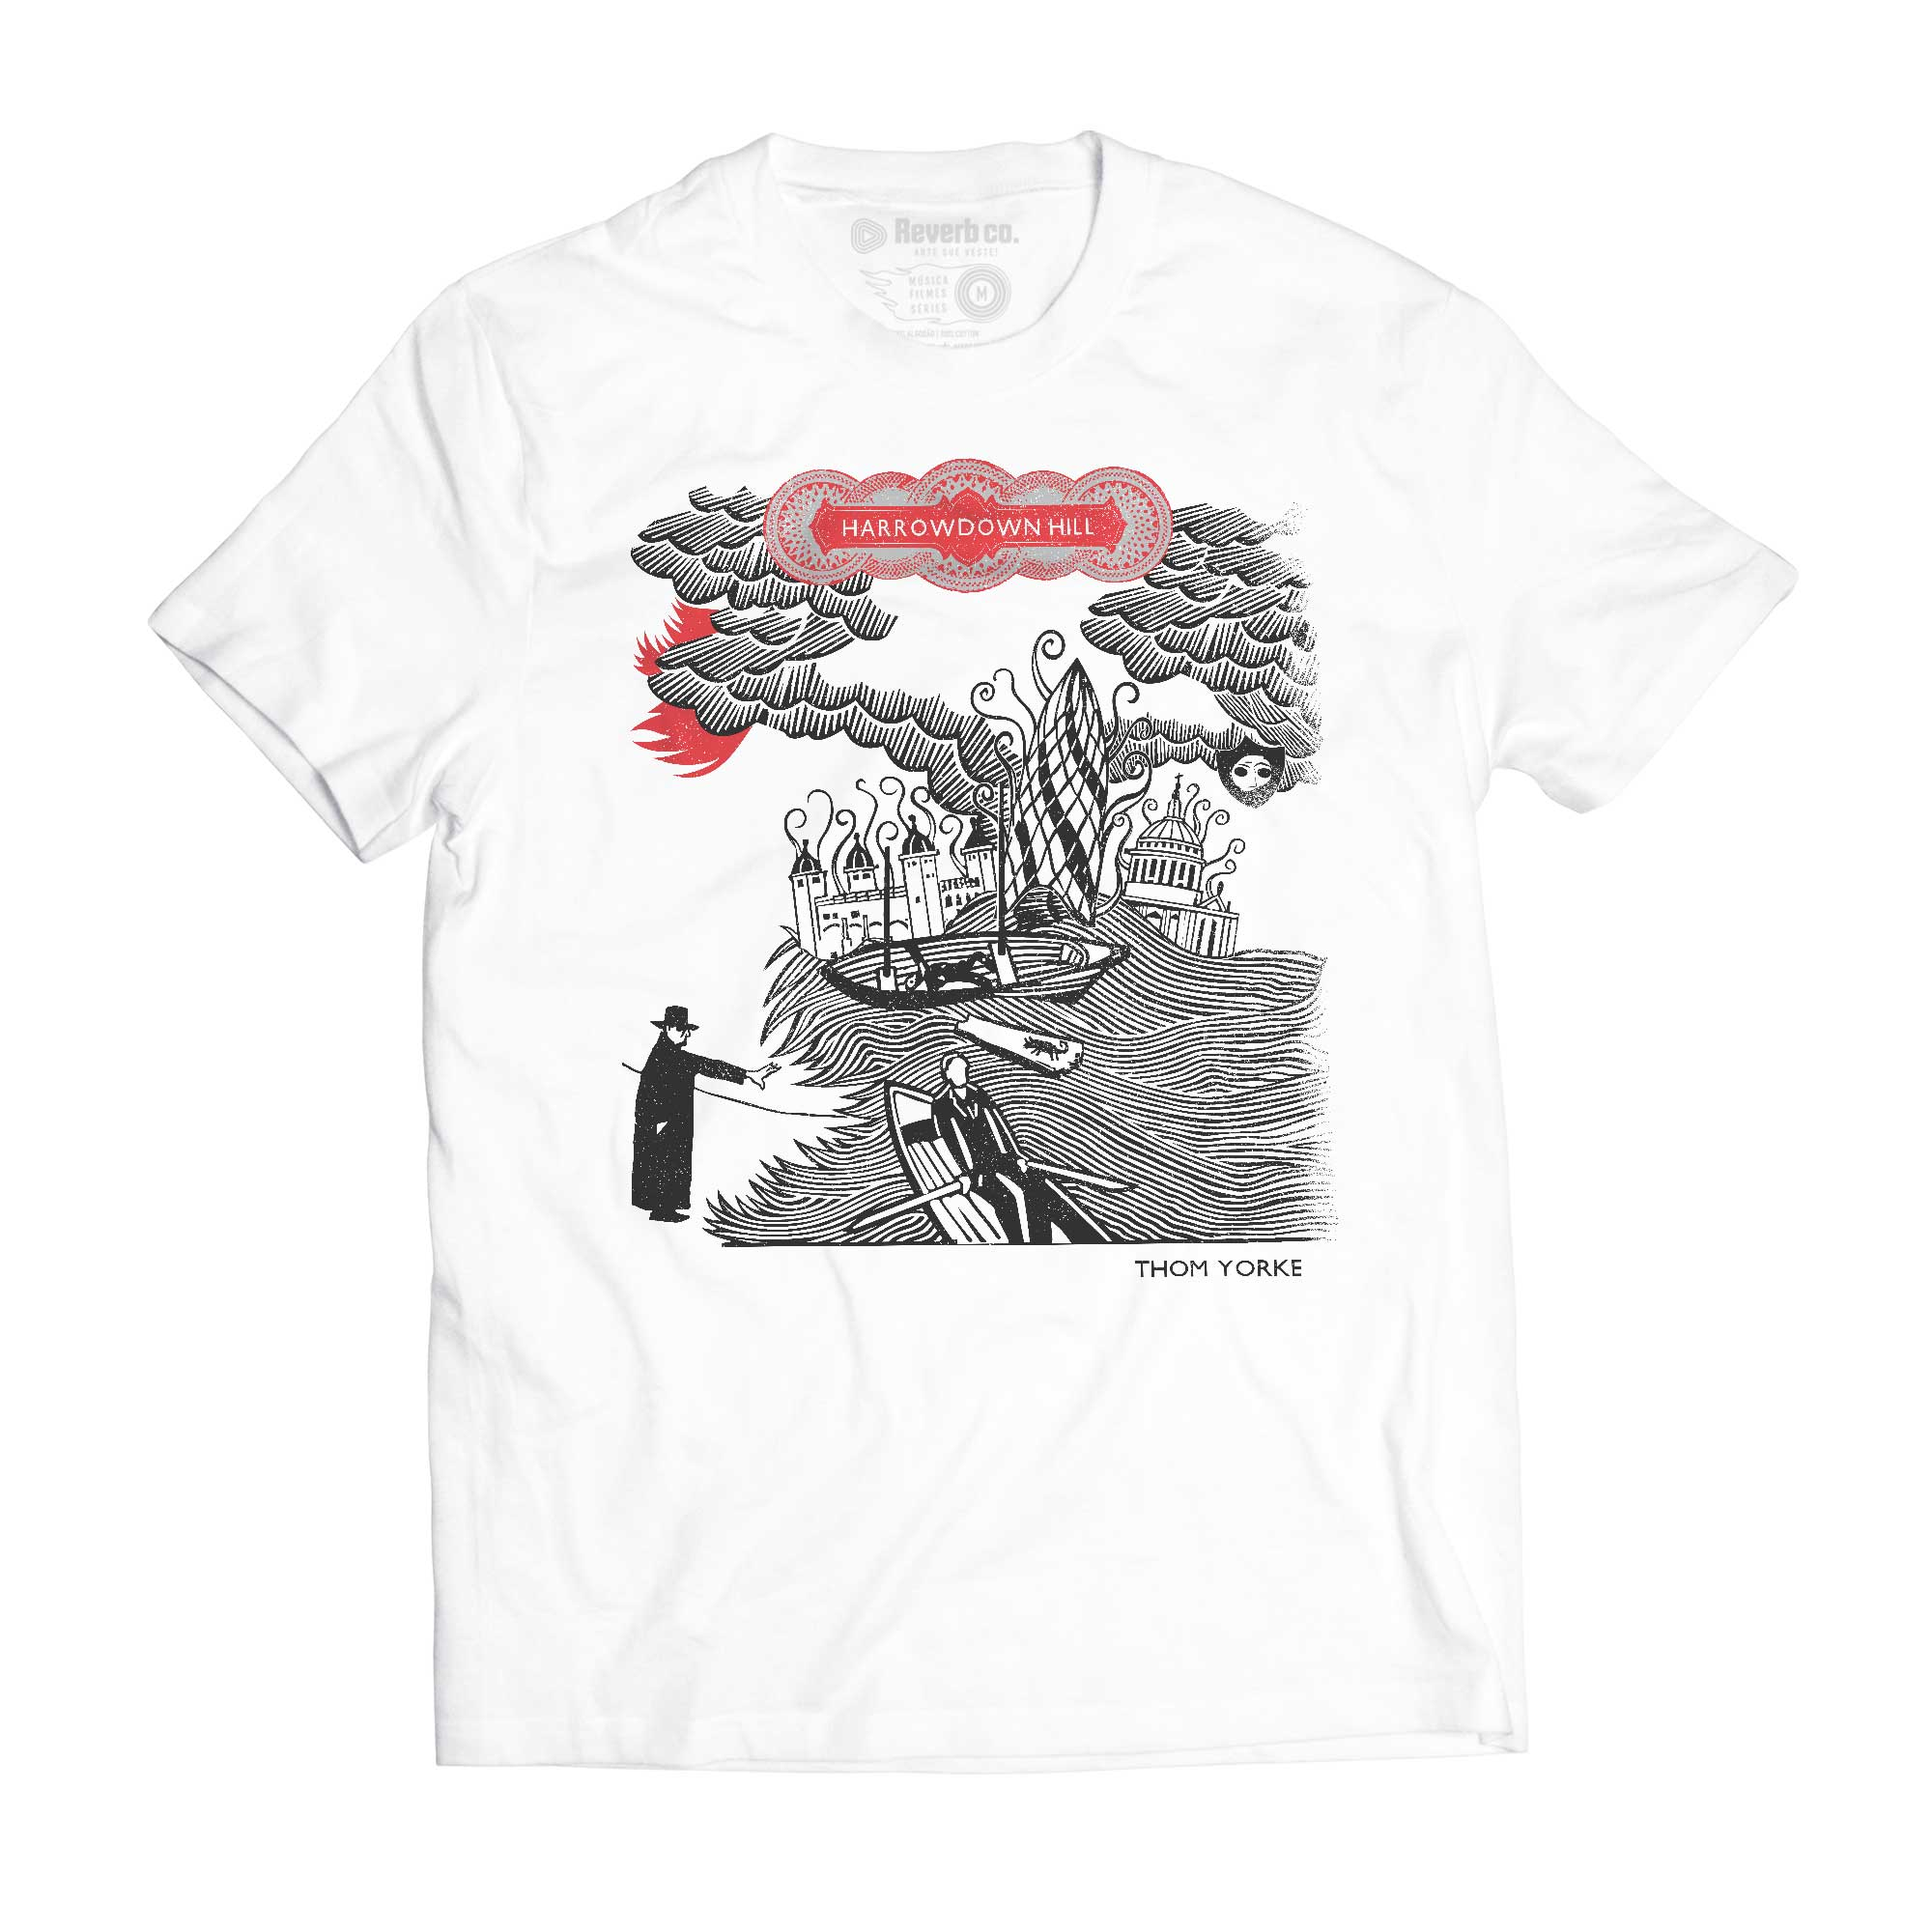 Camiseta Harrowdown Hill - Thom Yorke - Masculino